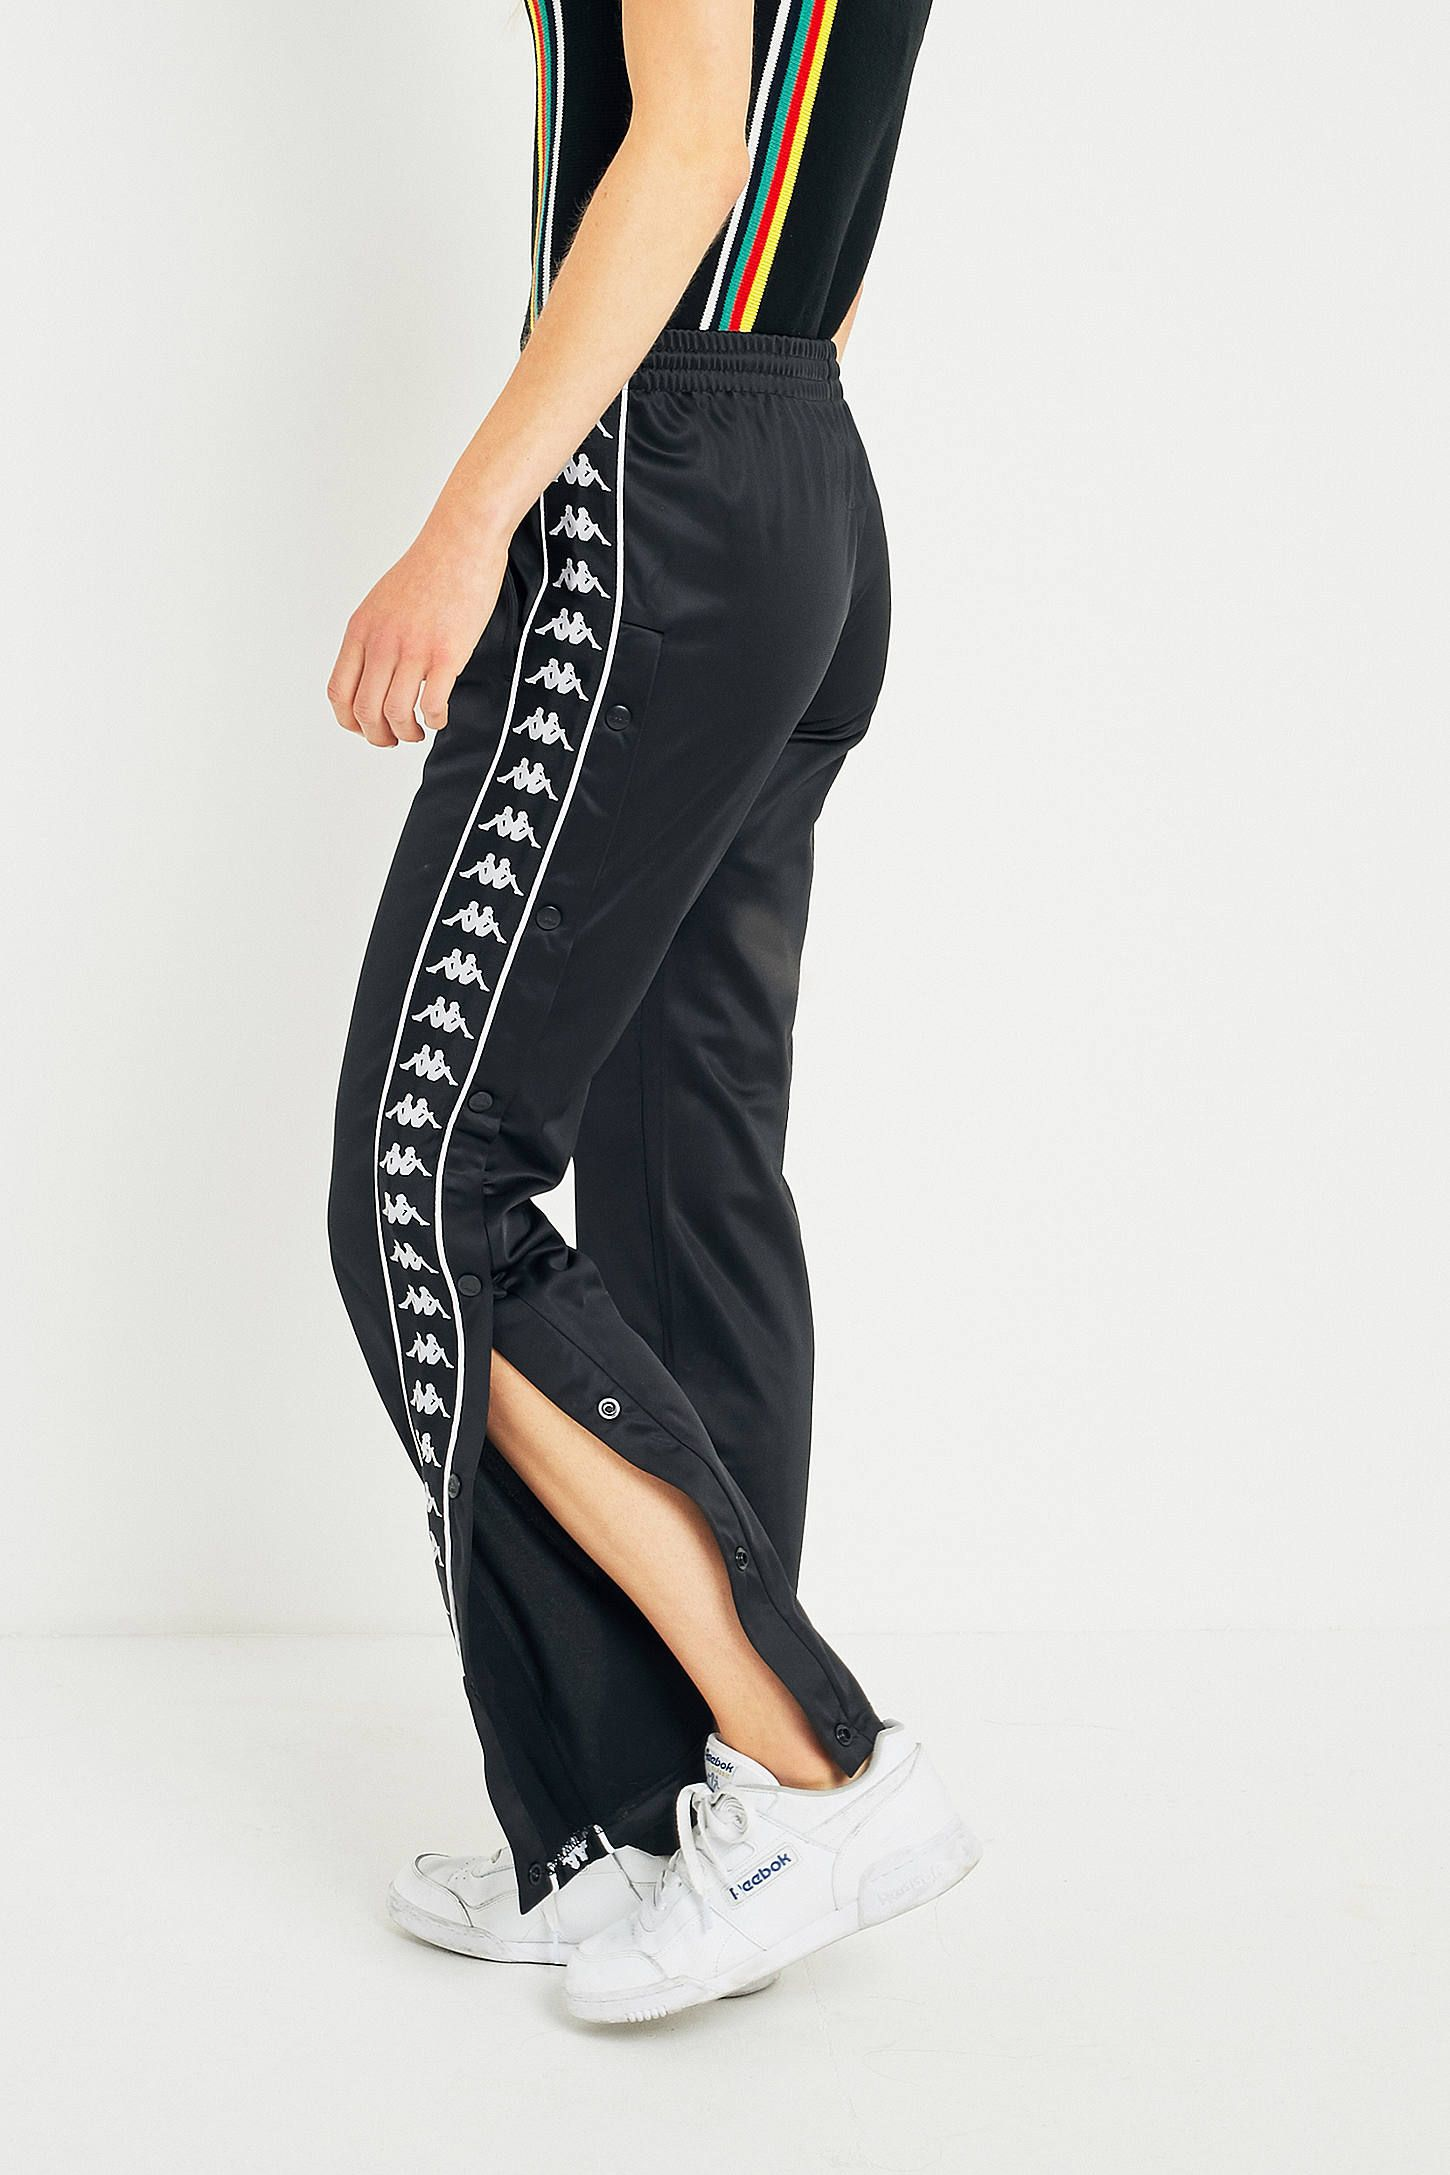 7e8fb0bc67 Kappa Black Taping Popper Track Pants | outfits | Pants outfit ...